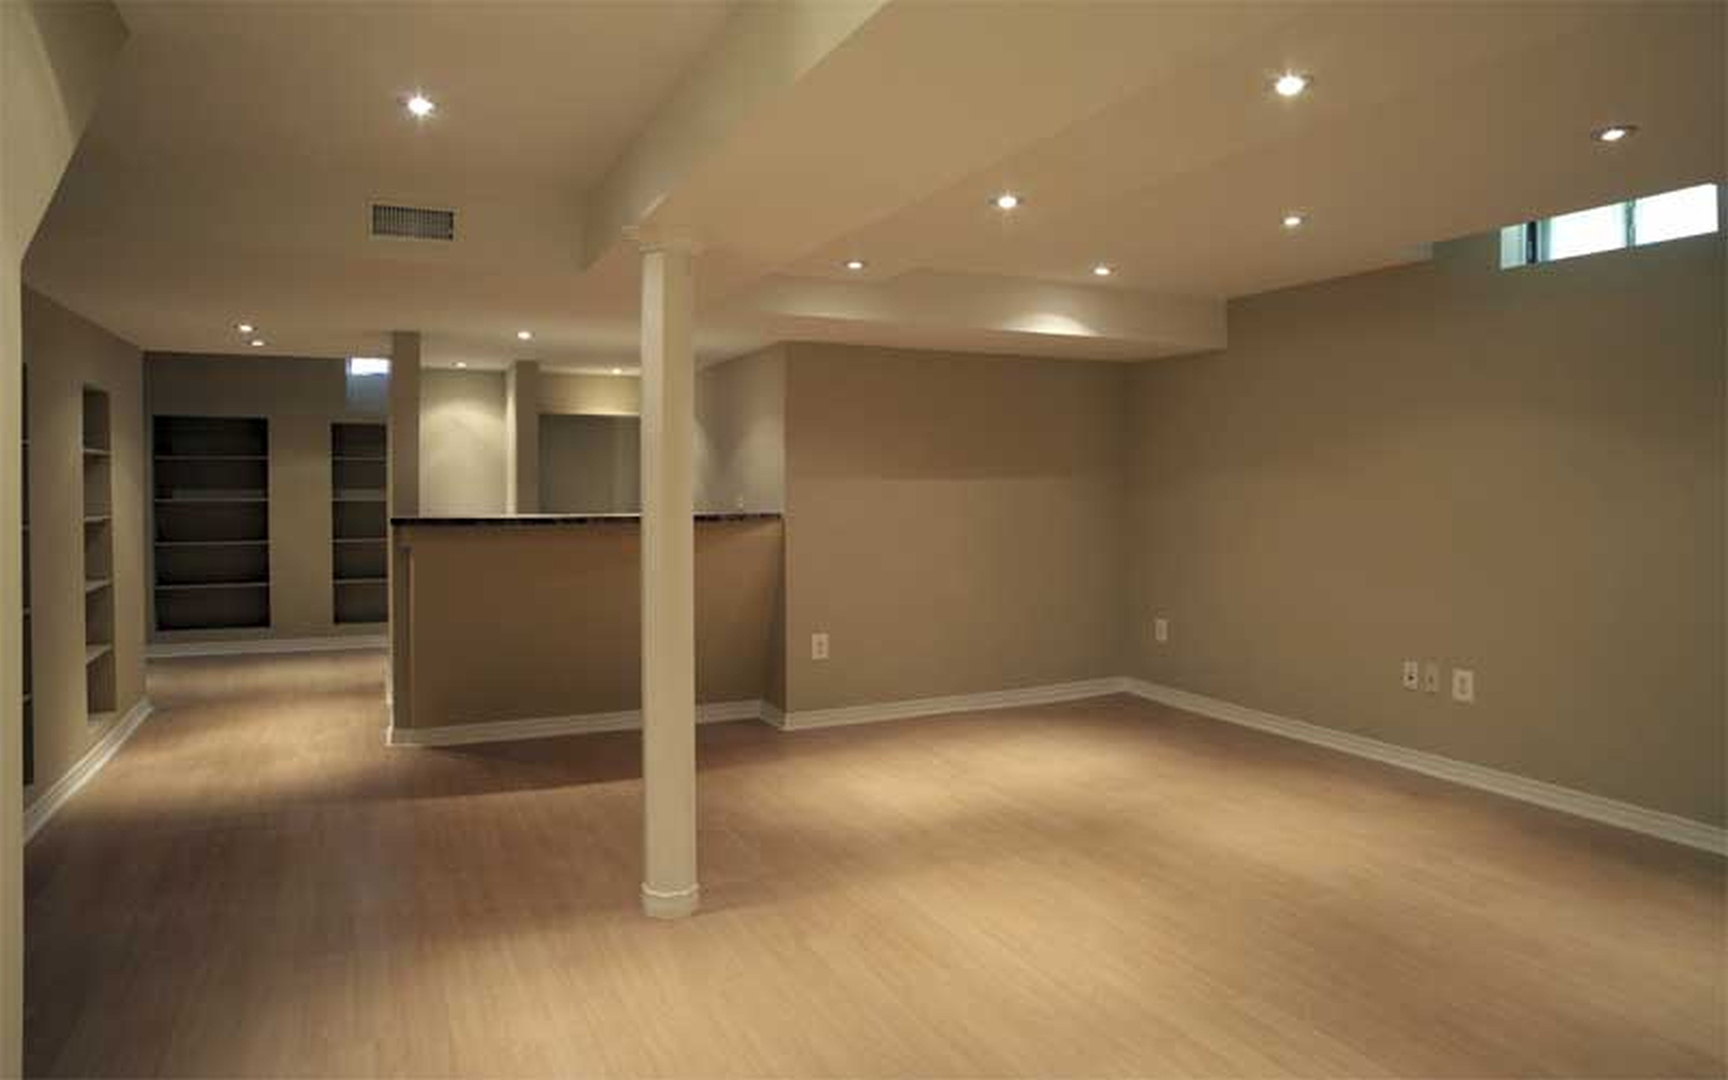 Basement Remodeling Service Minimalist Basement Remodeling & Finishing East Orange Nj Basement .